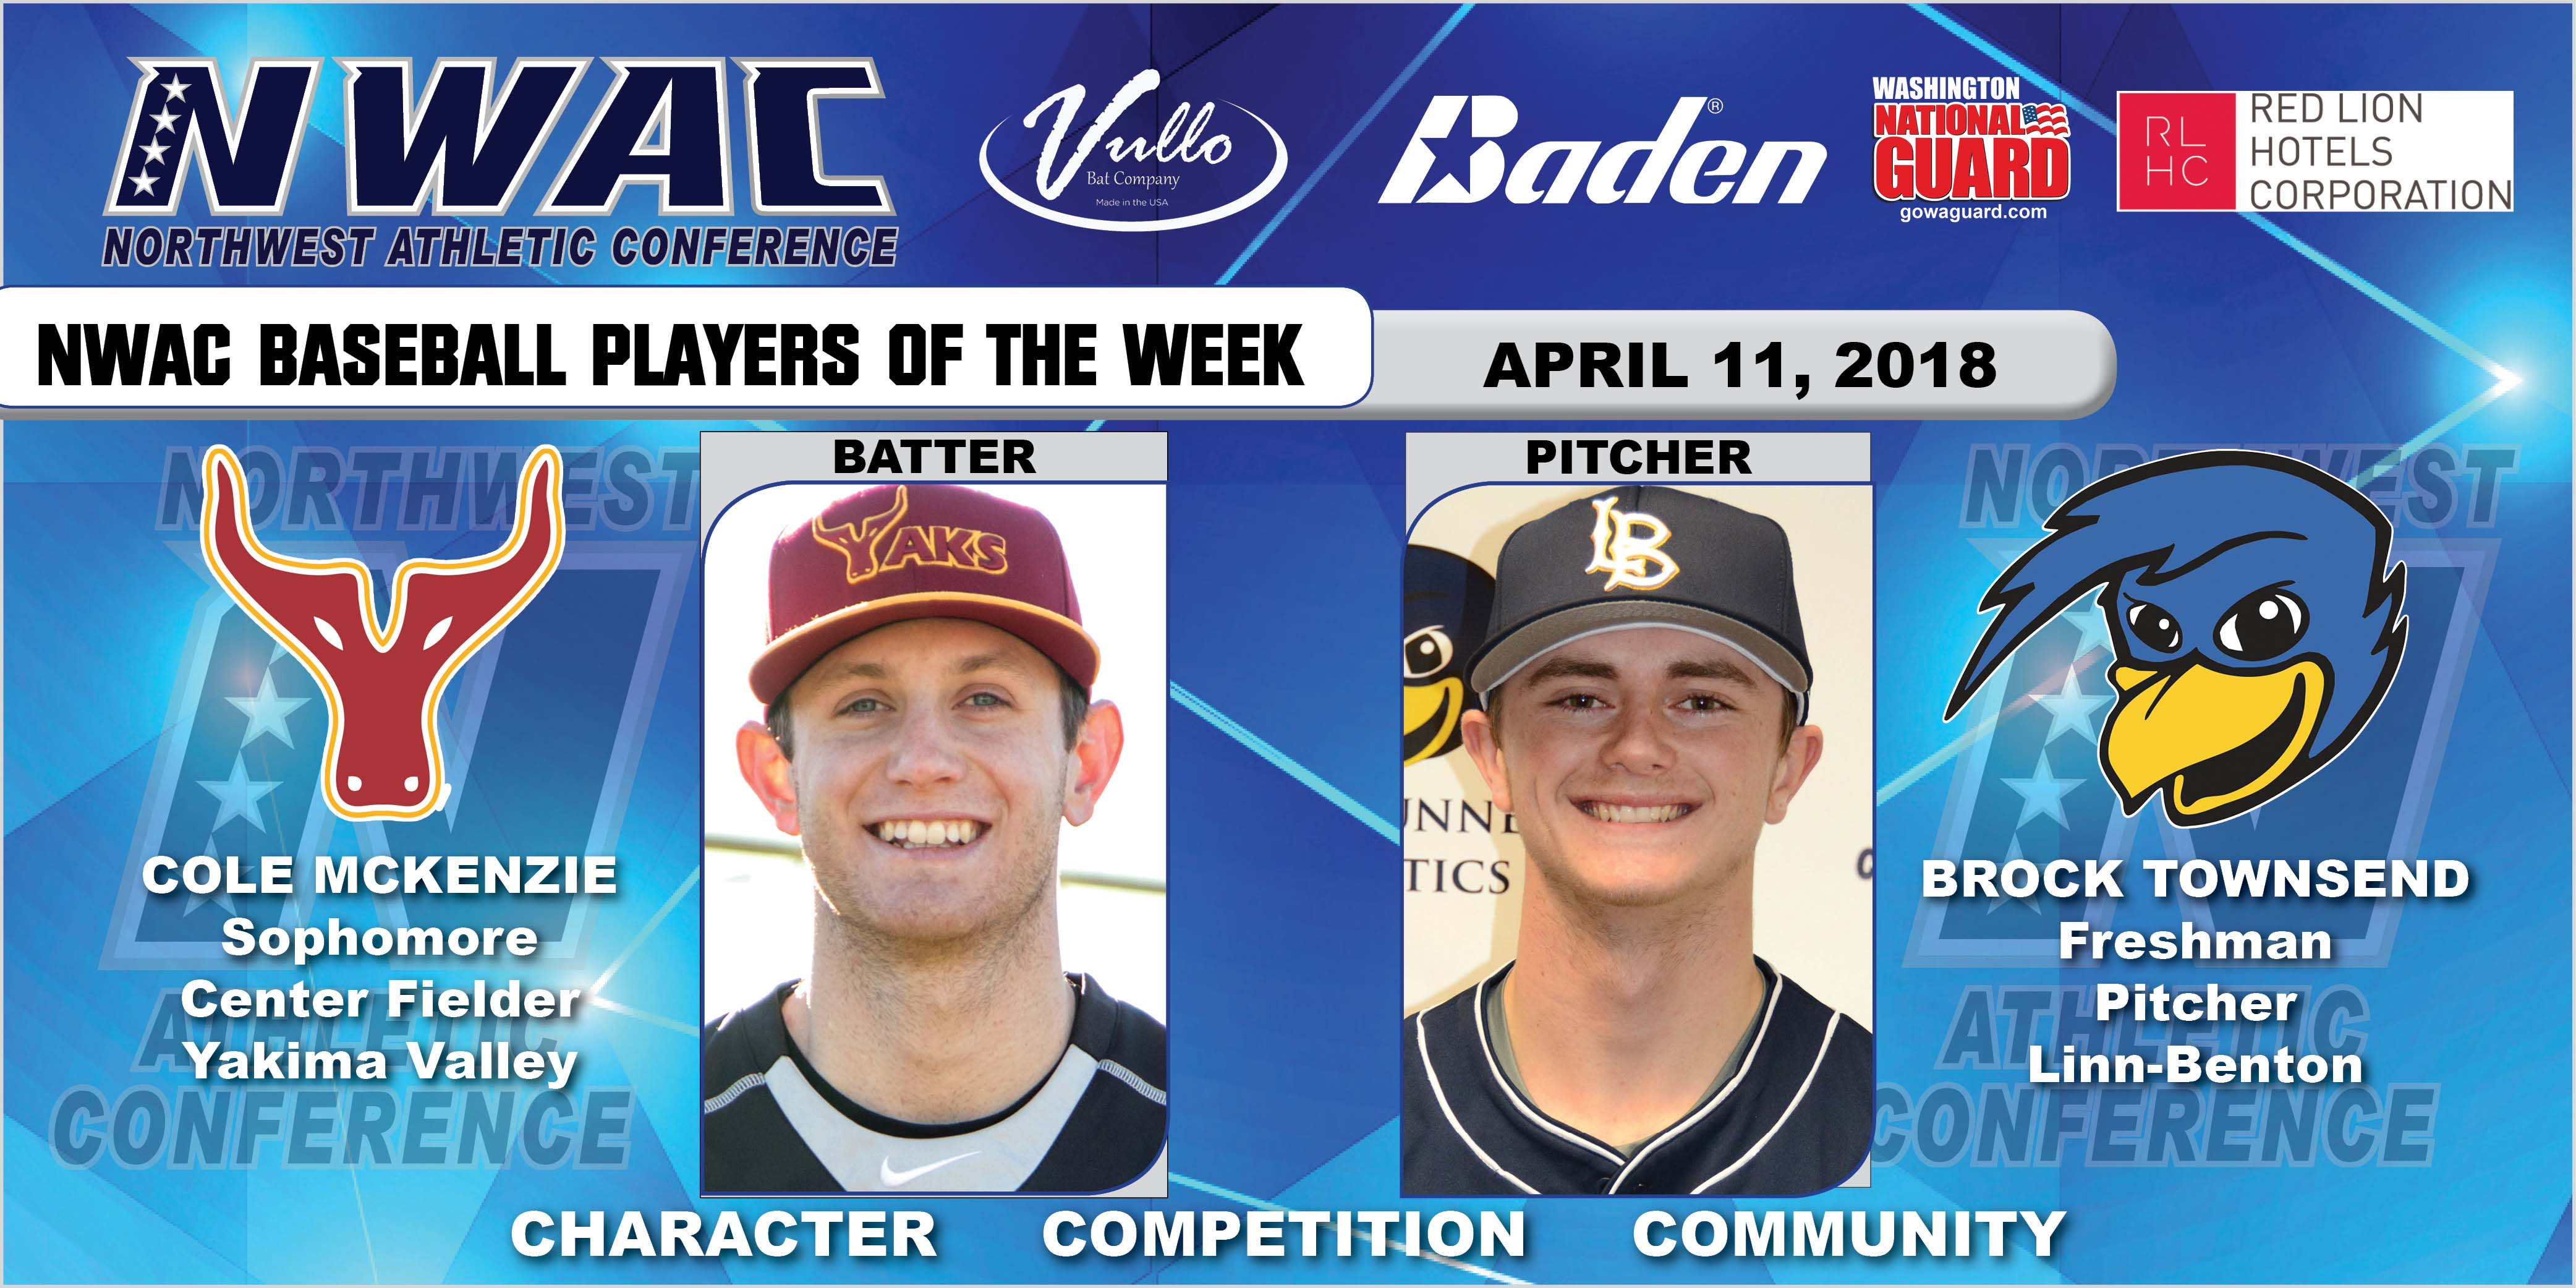 Cole Mckenzie and Brock Townsend players of the week collage